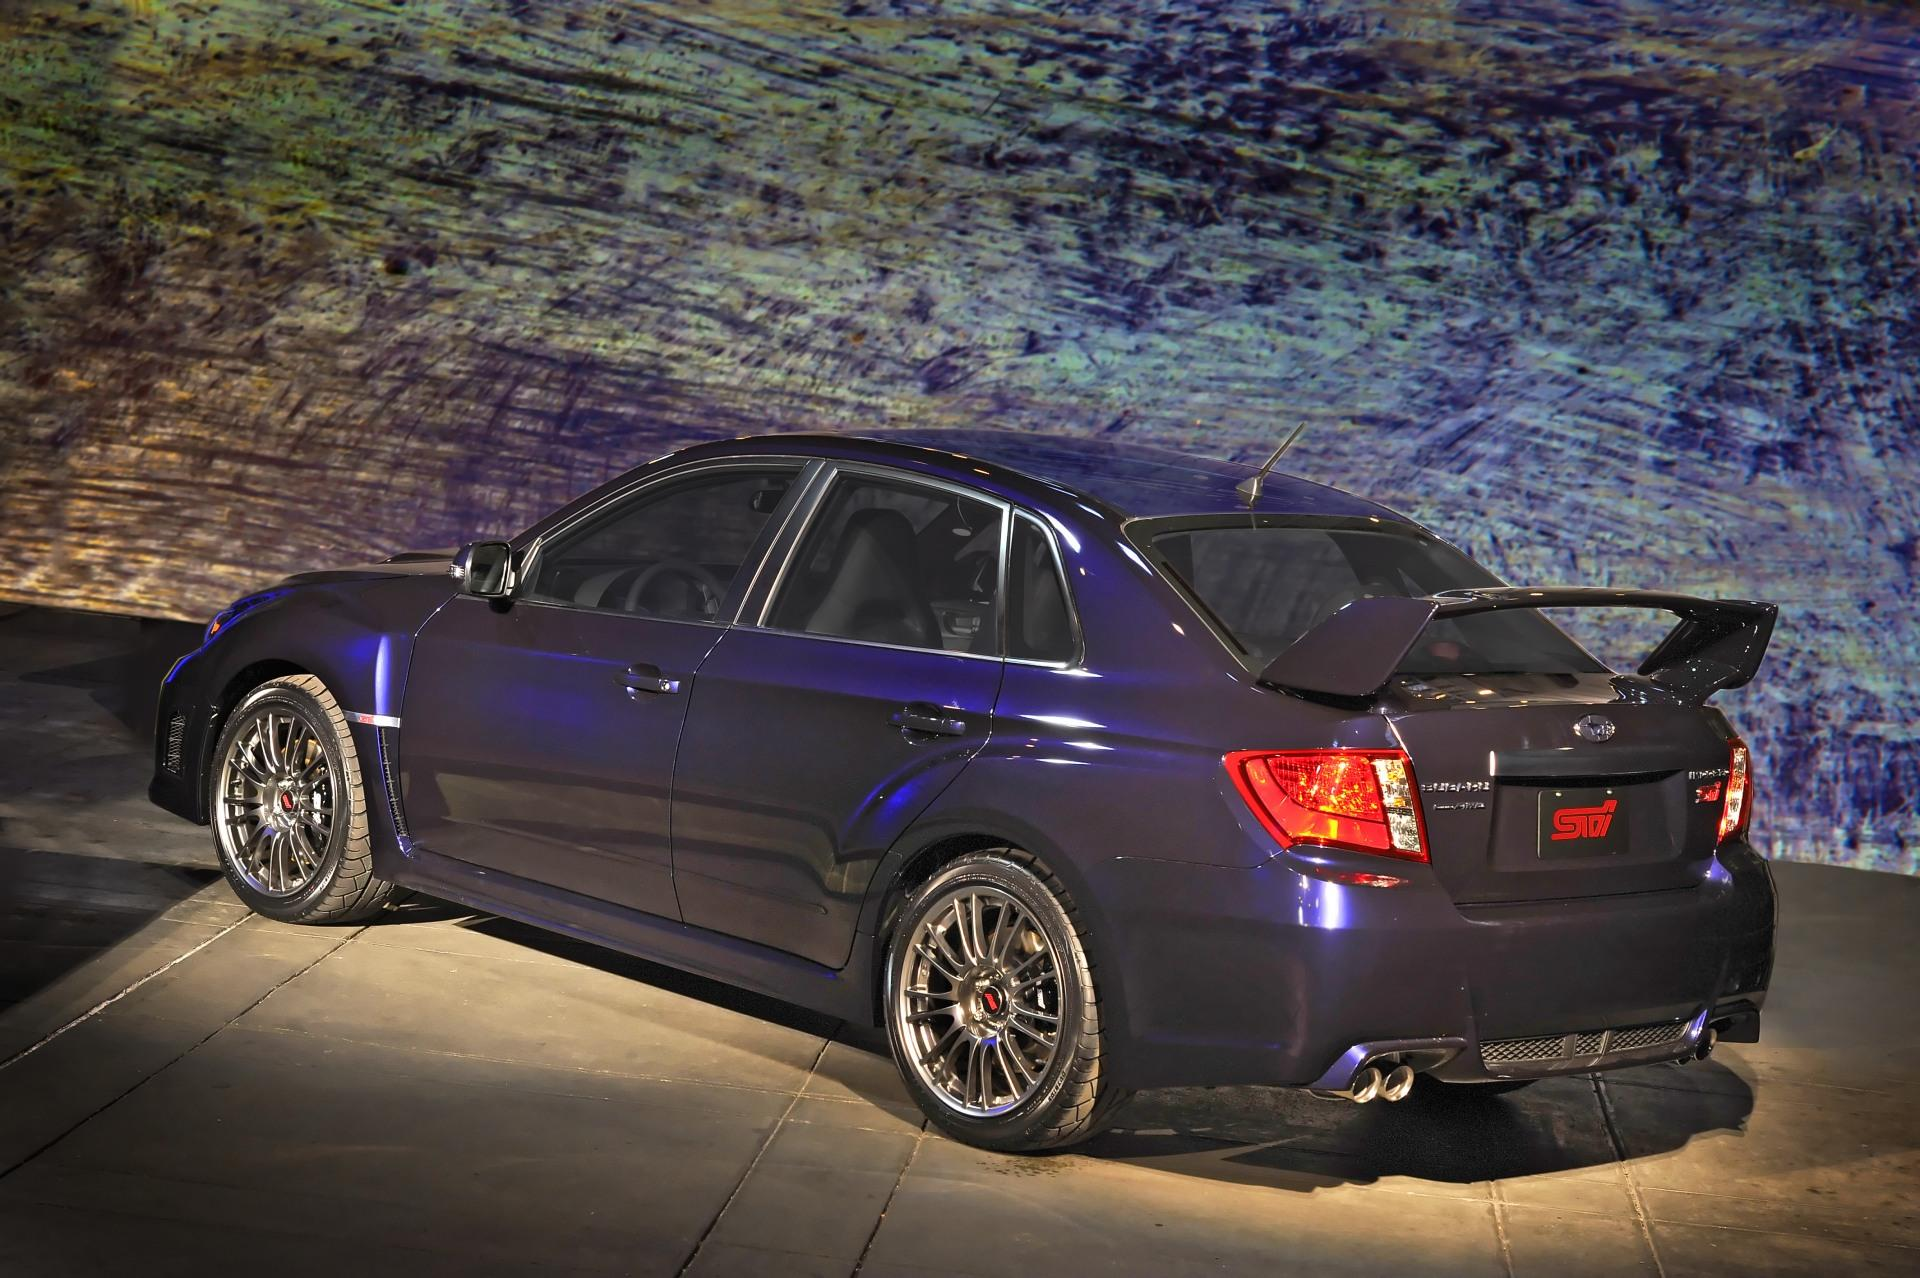 2018 Subaru Impreza WRX STI | Car Photos Catalog 2018